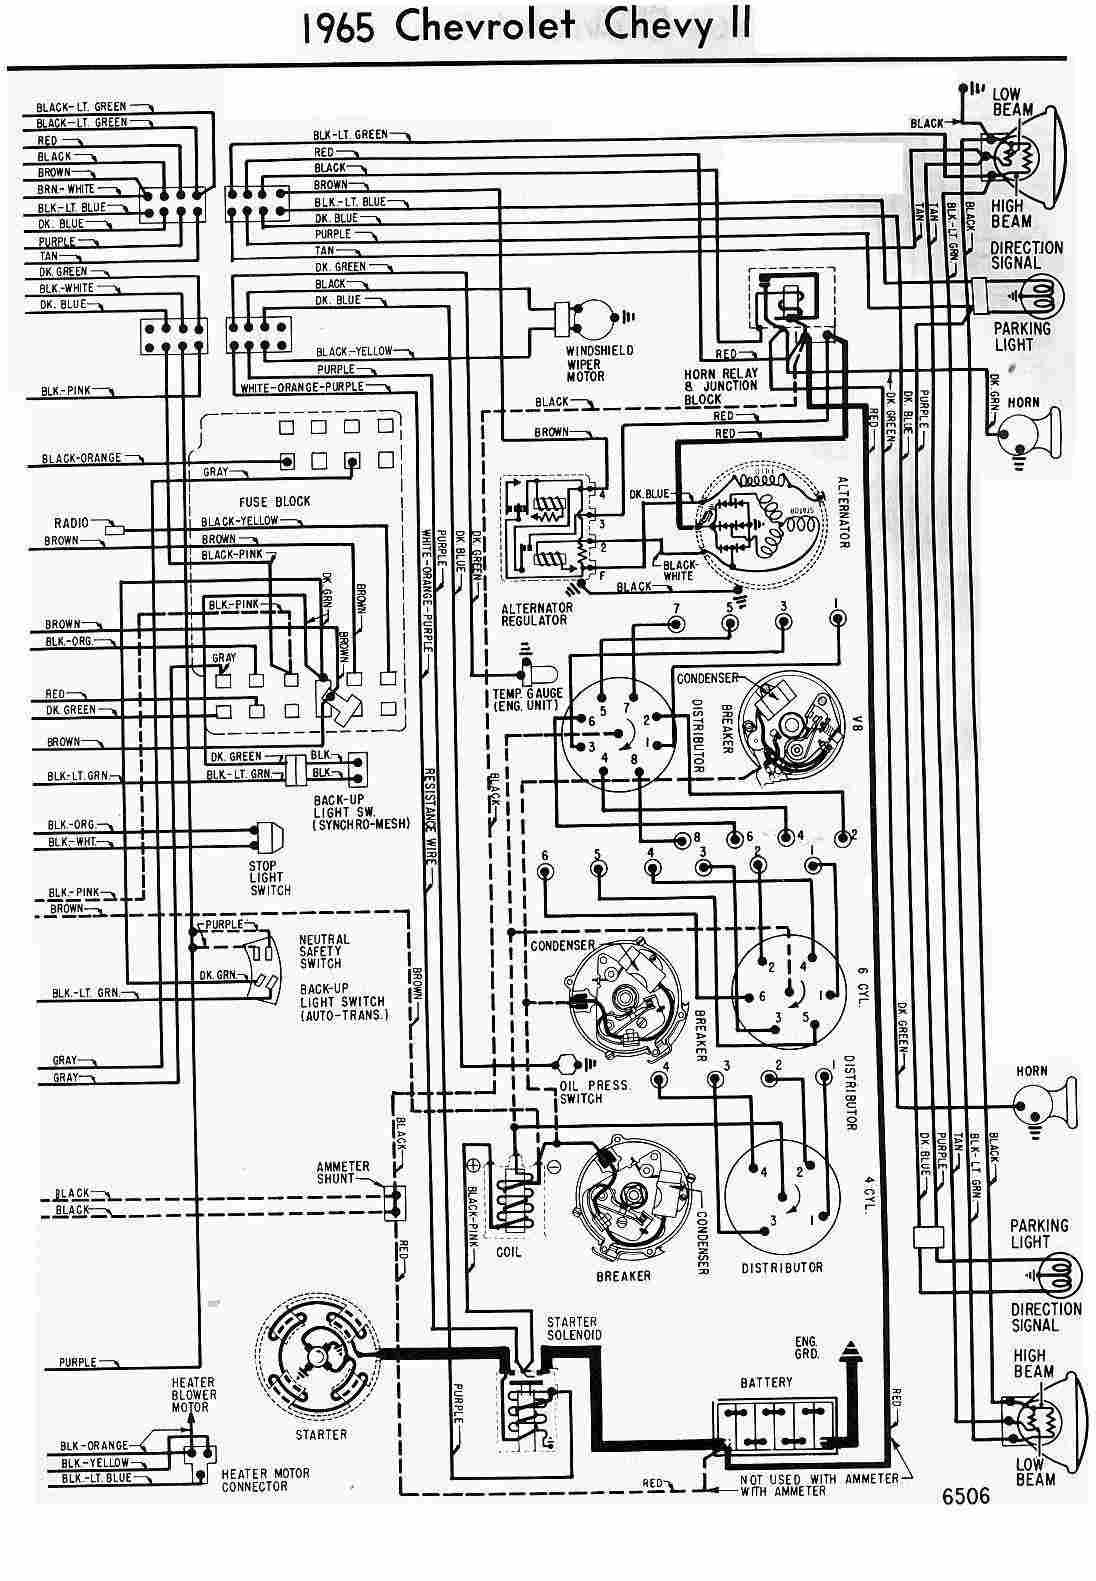 1965 Corvair Wiring Diagram 1966 Engine 1961 Chevy Dash Free Download Anything Daimler